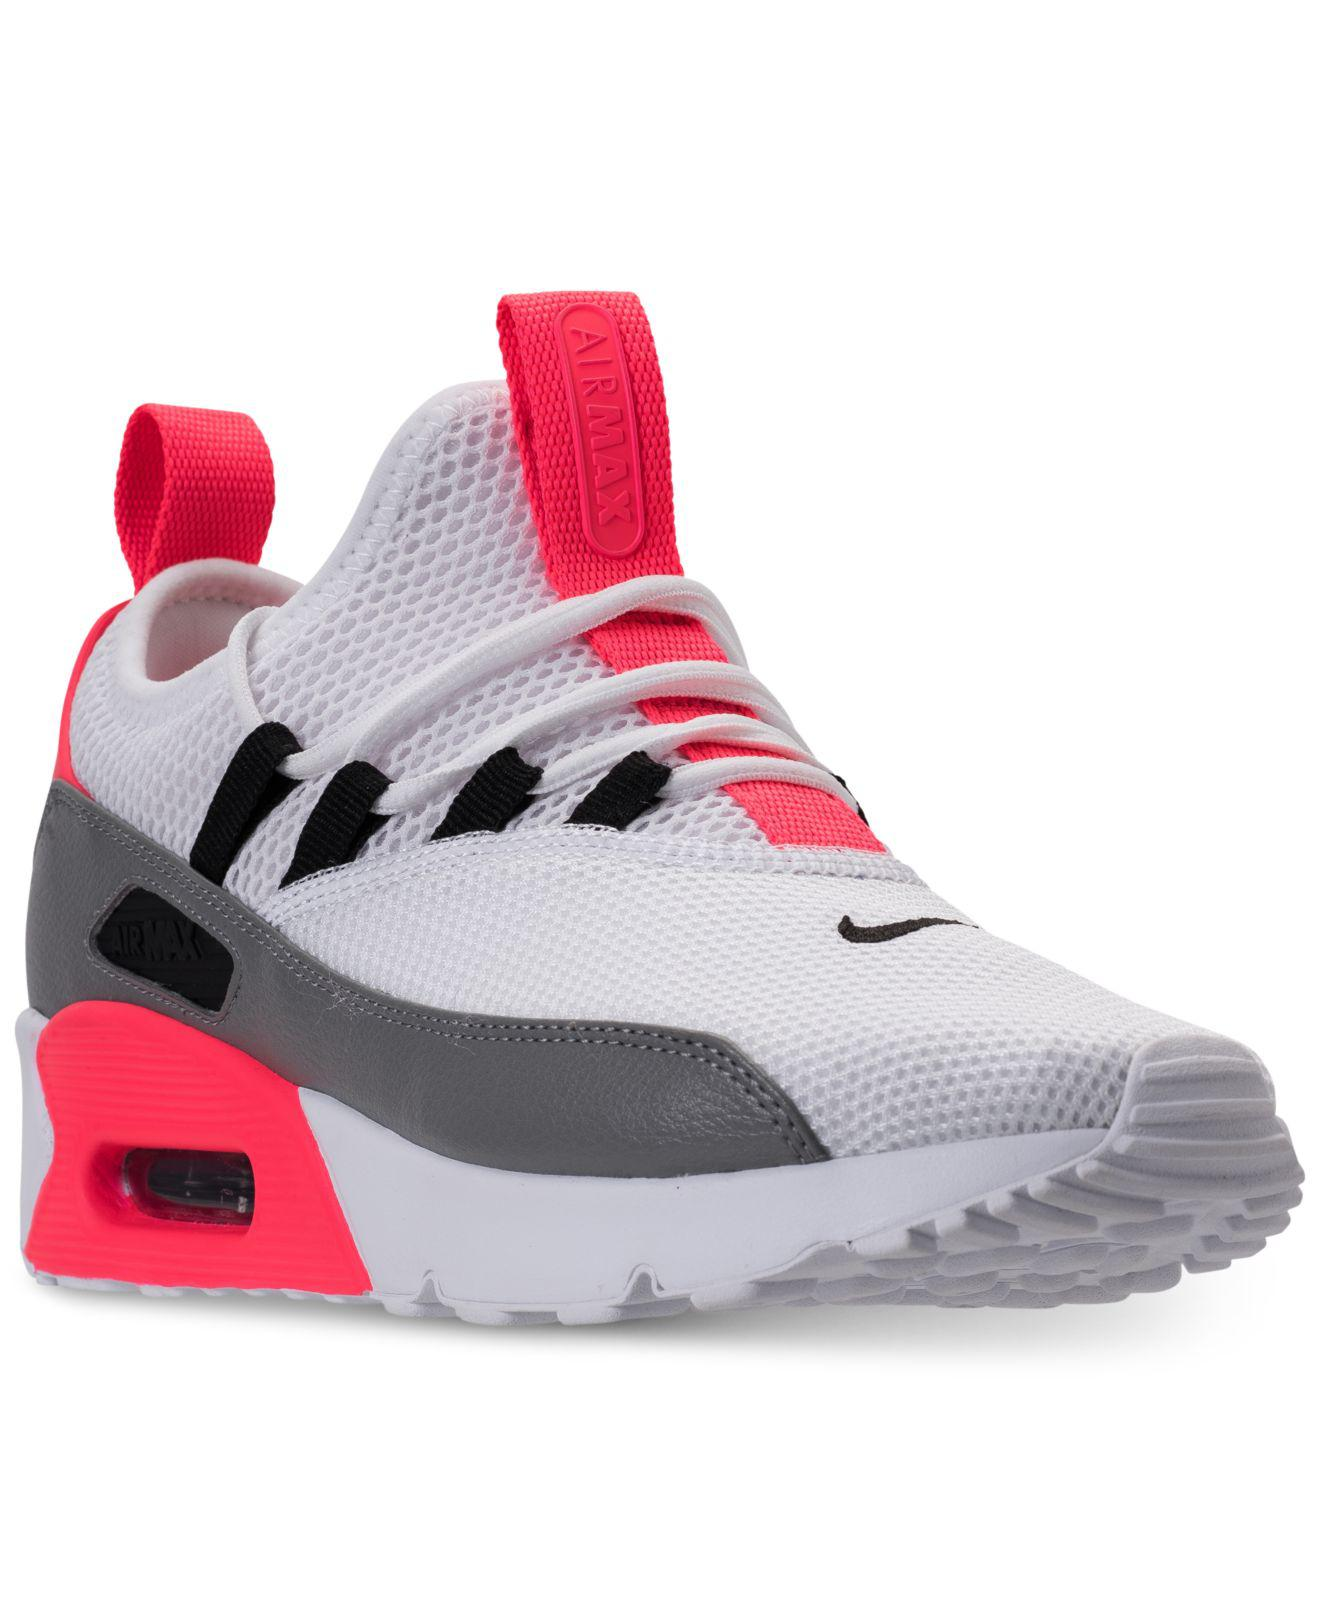 detailed look 4c7f3 86340 Gallery. Previously sold at  Macy s, Macy s · Women s Nike Air Max 90